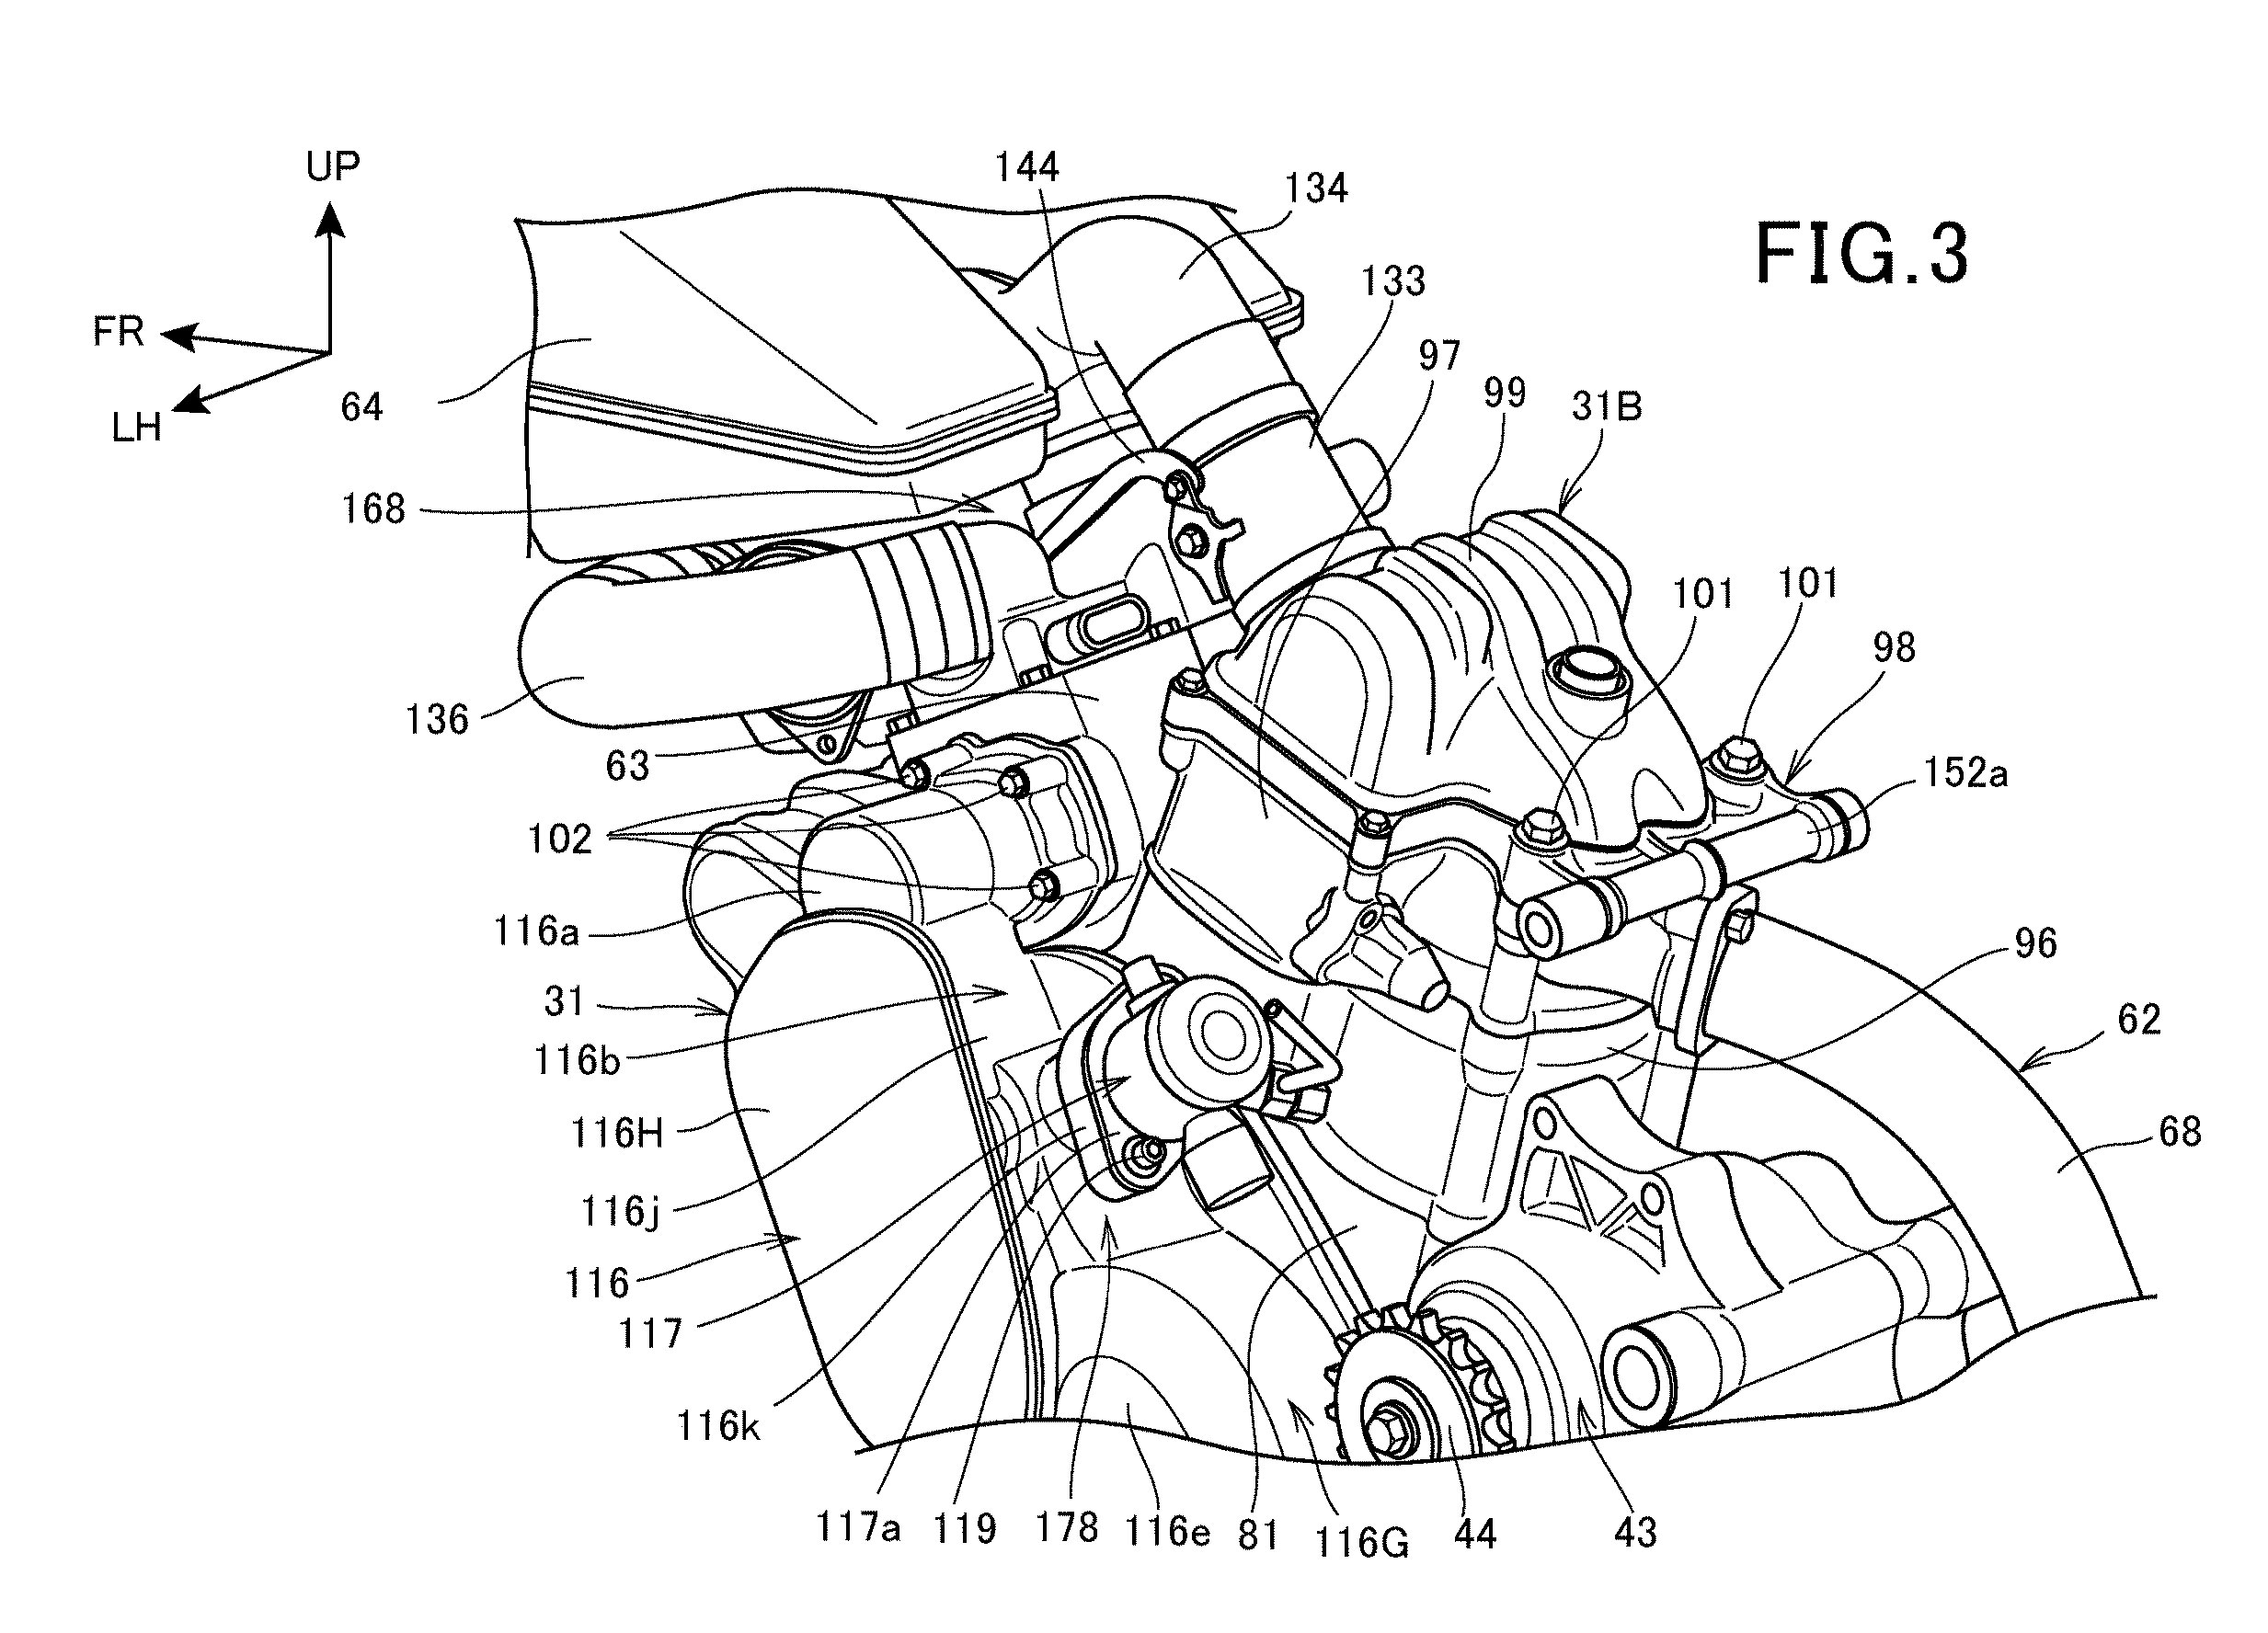 Honda Developing Supercharged V-Twin with Direct Injection